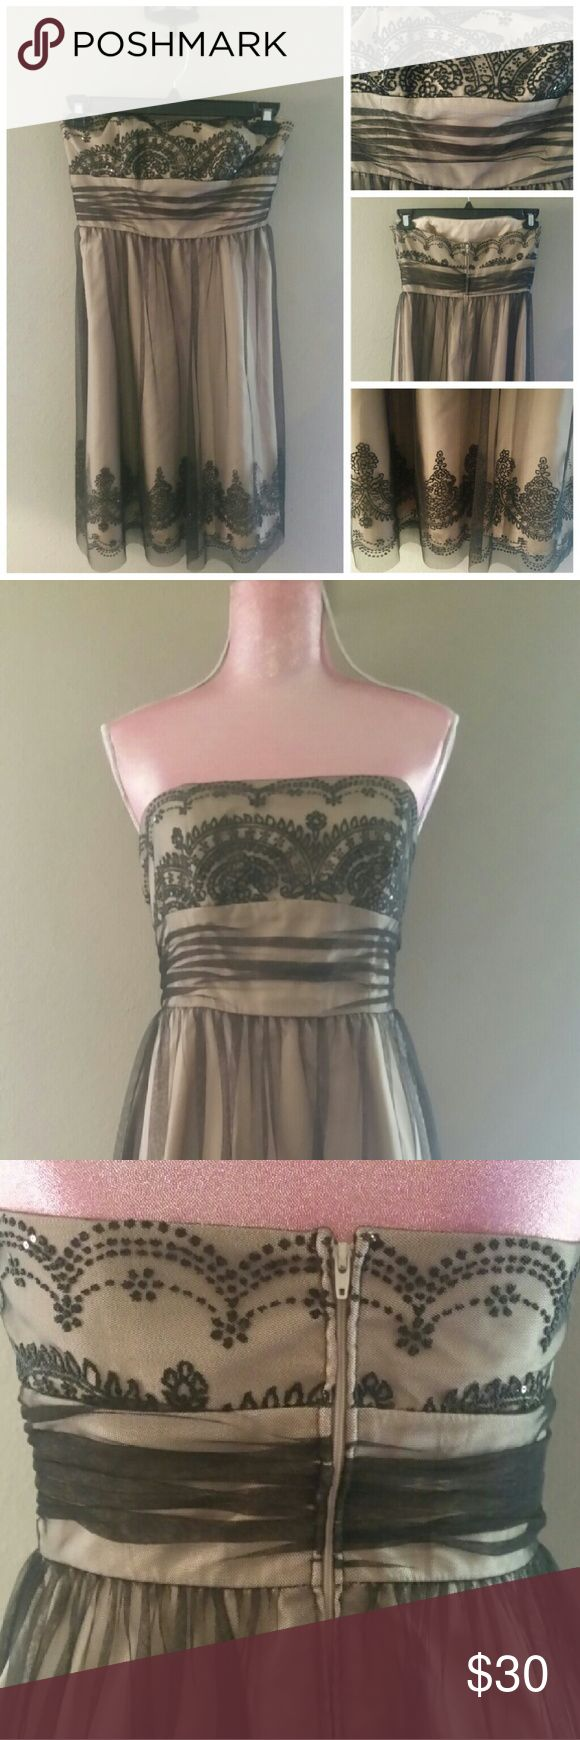 DAVID'S BRIDAL BLACK SEQUIN DRESS SIZE 6 DAVID'S BRIDAL BLACK/CREAM SEQUIN DRESS, SIZE 6, 100% POLEYESTER, SLEEVLESS, LENGTH 34 INCHES David's Bridal Dresses Prom